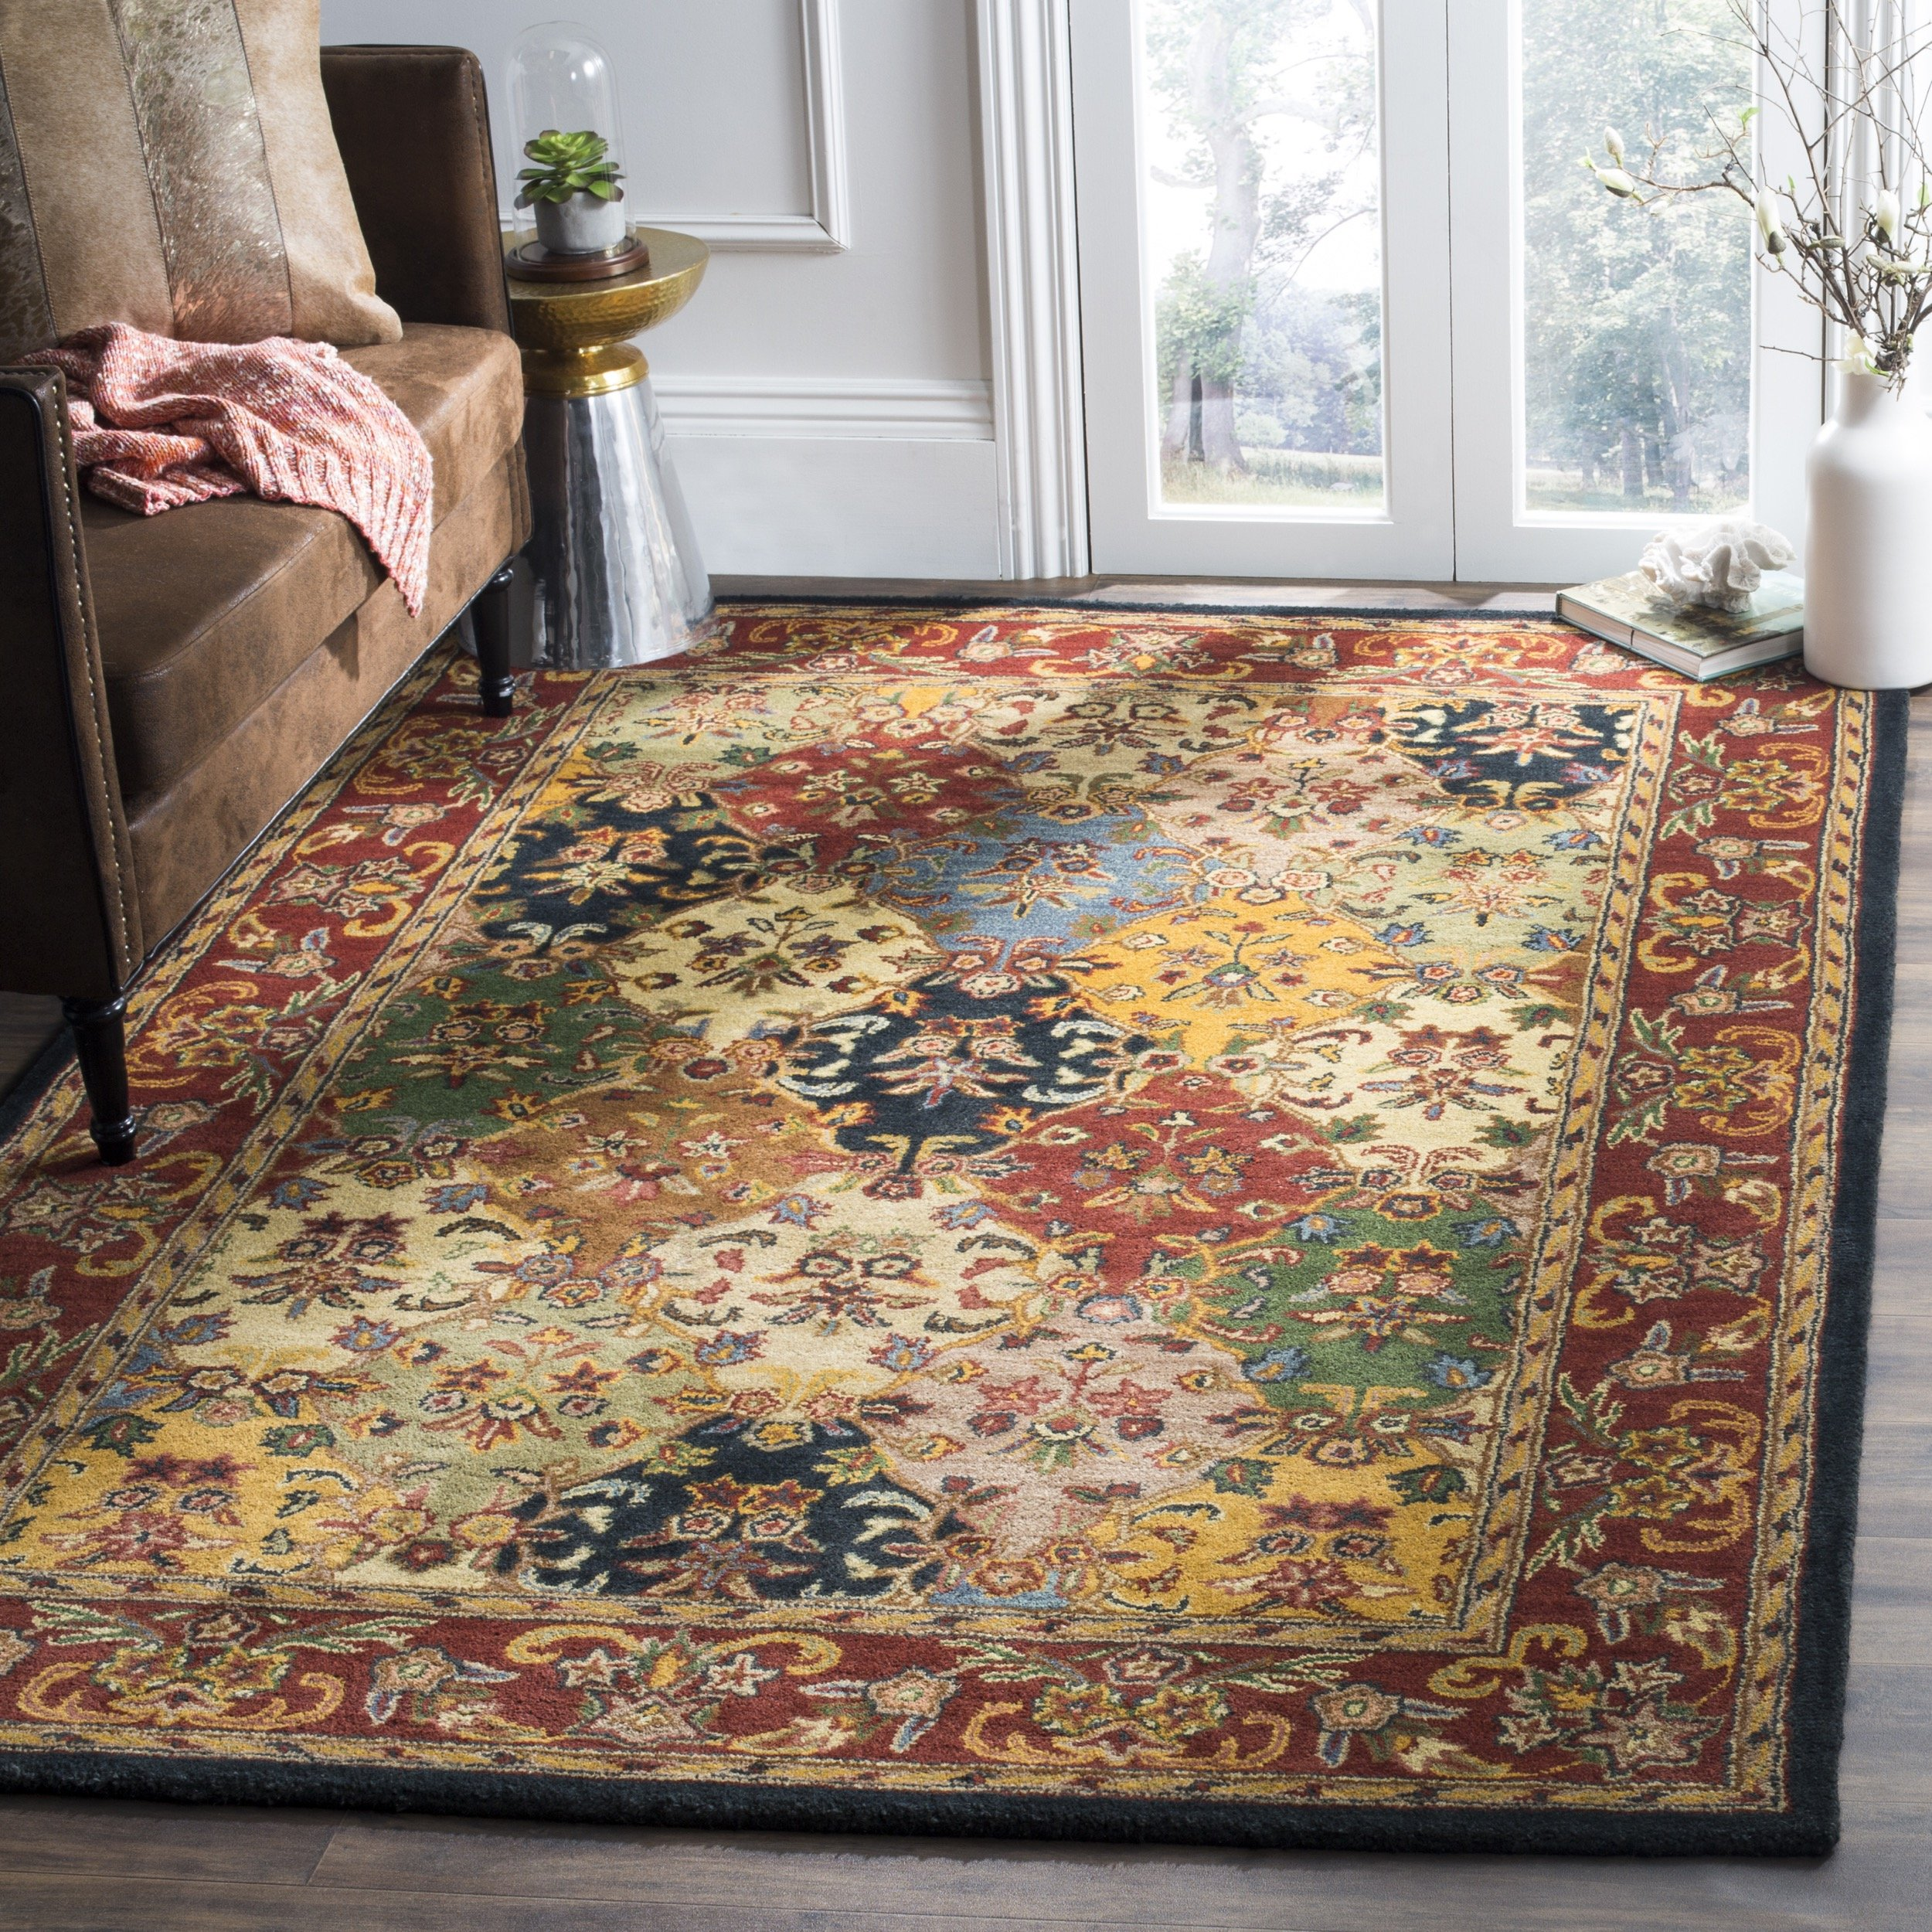 Safavieh heritage collection hg911a handcrafted traditional oriental multi and burgundy wool area rug 6